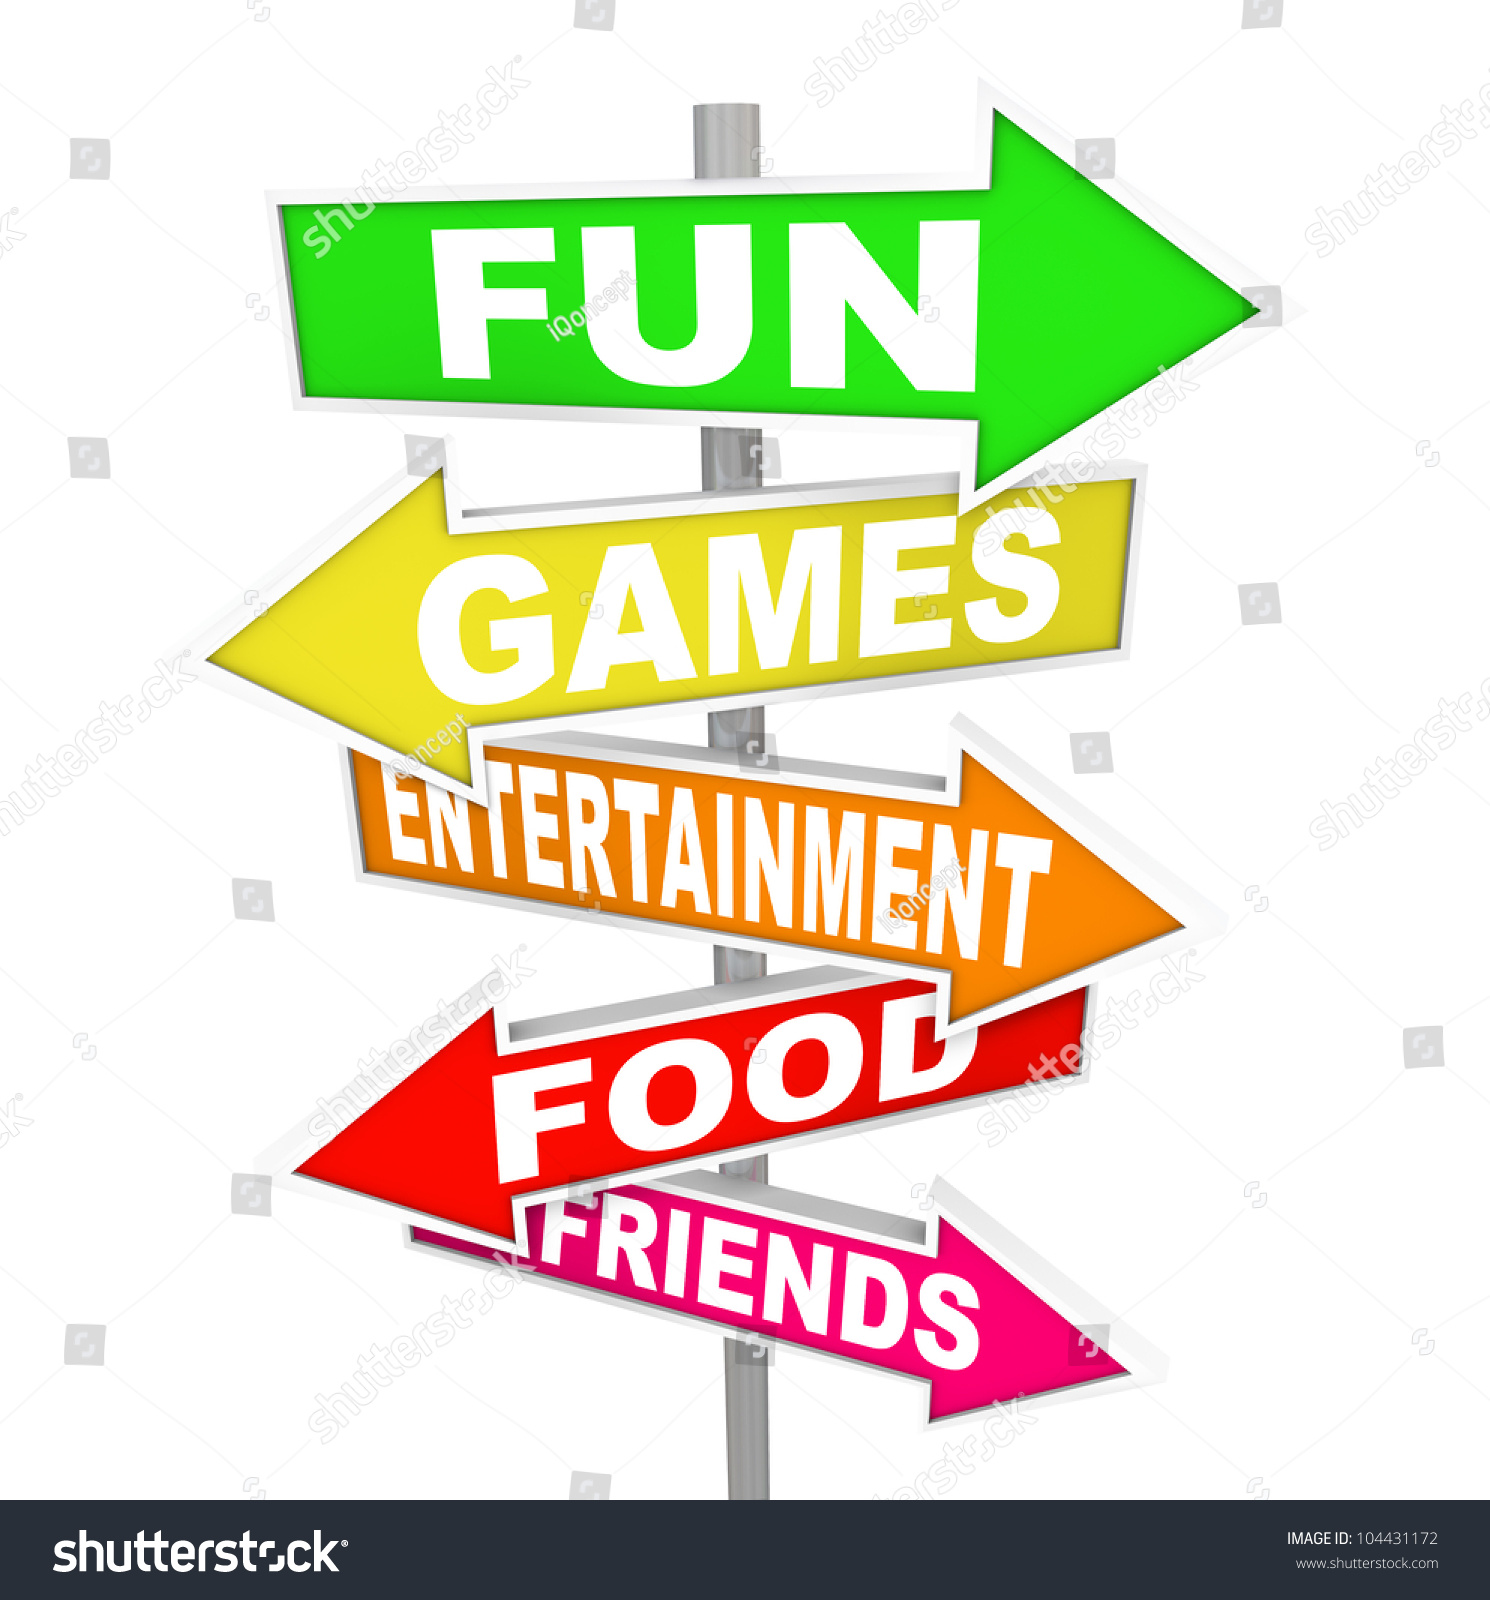 Food And Activities: Words Fun Games Entertainment Food Friends Stock